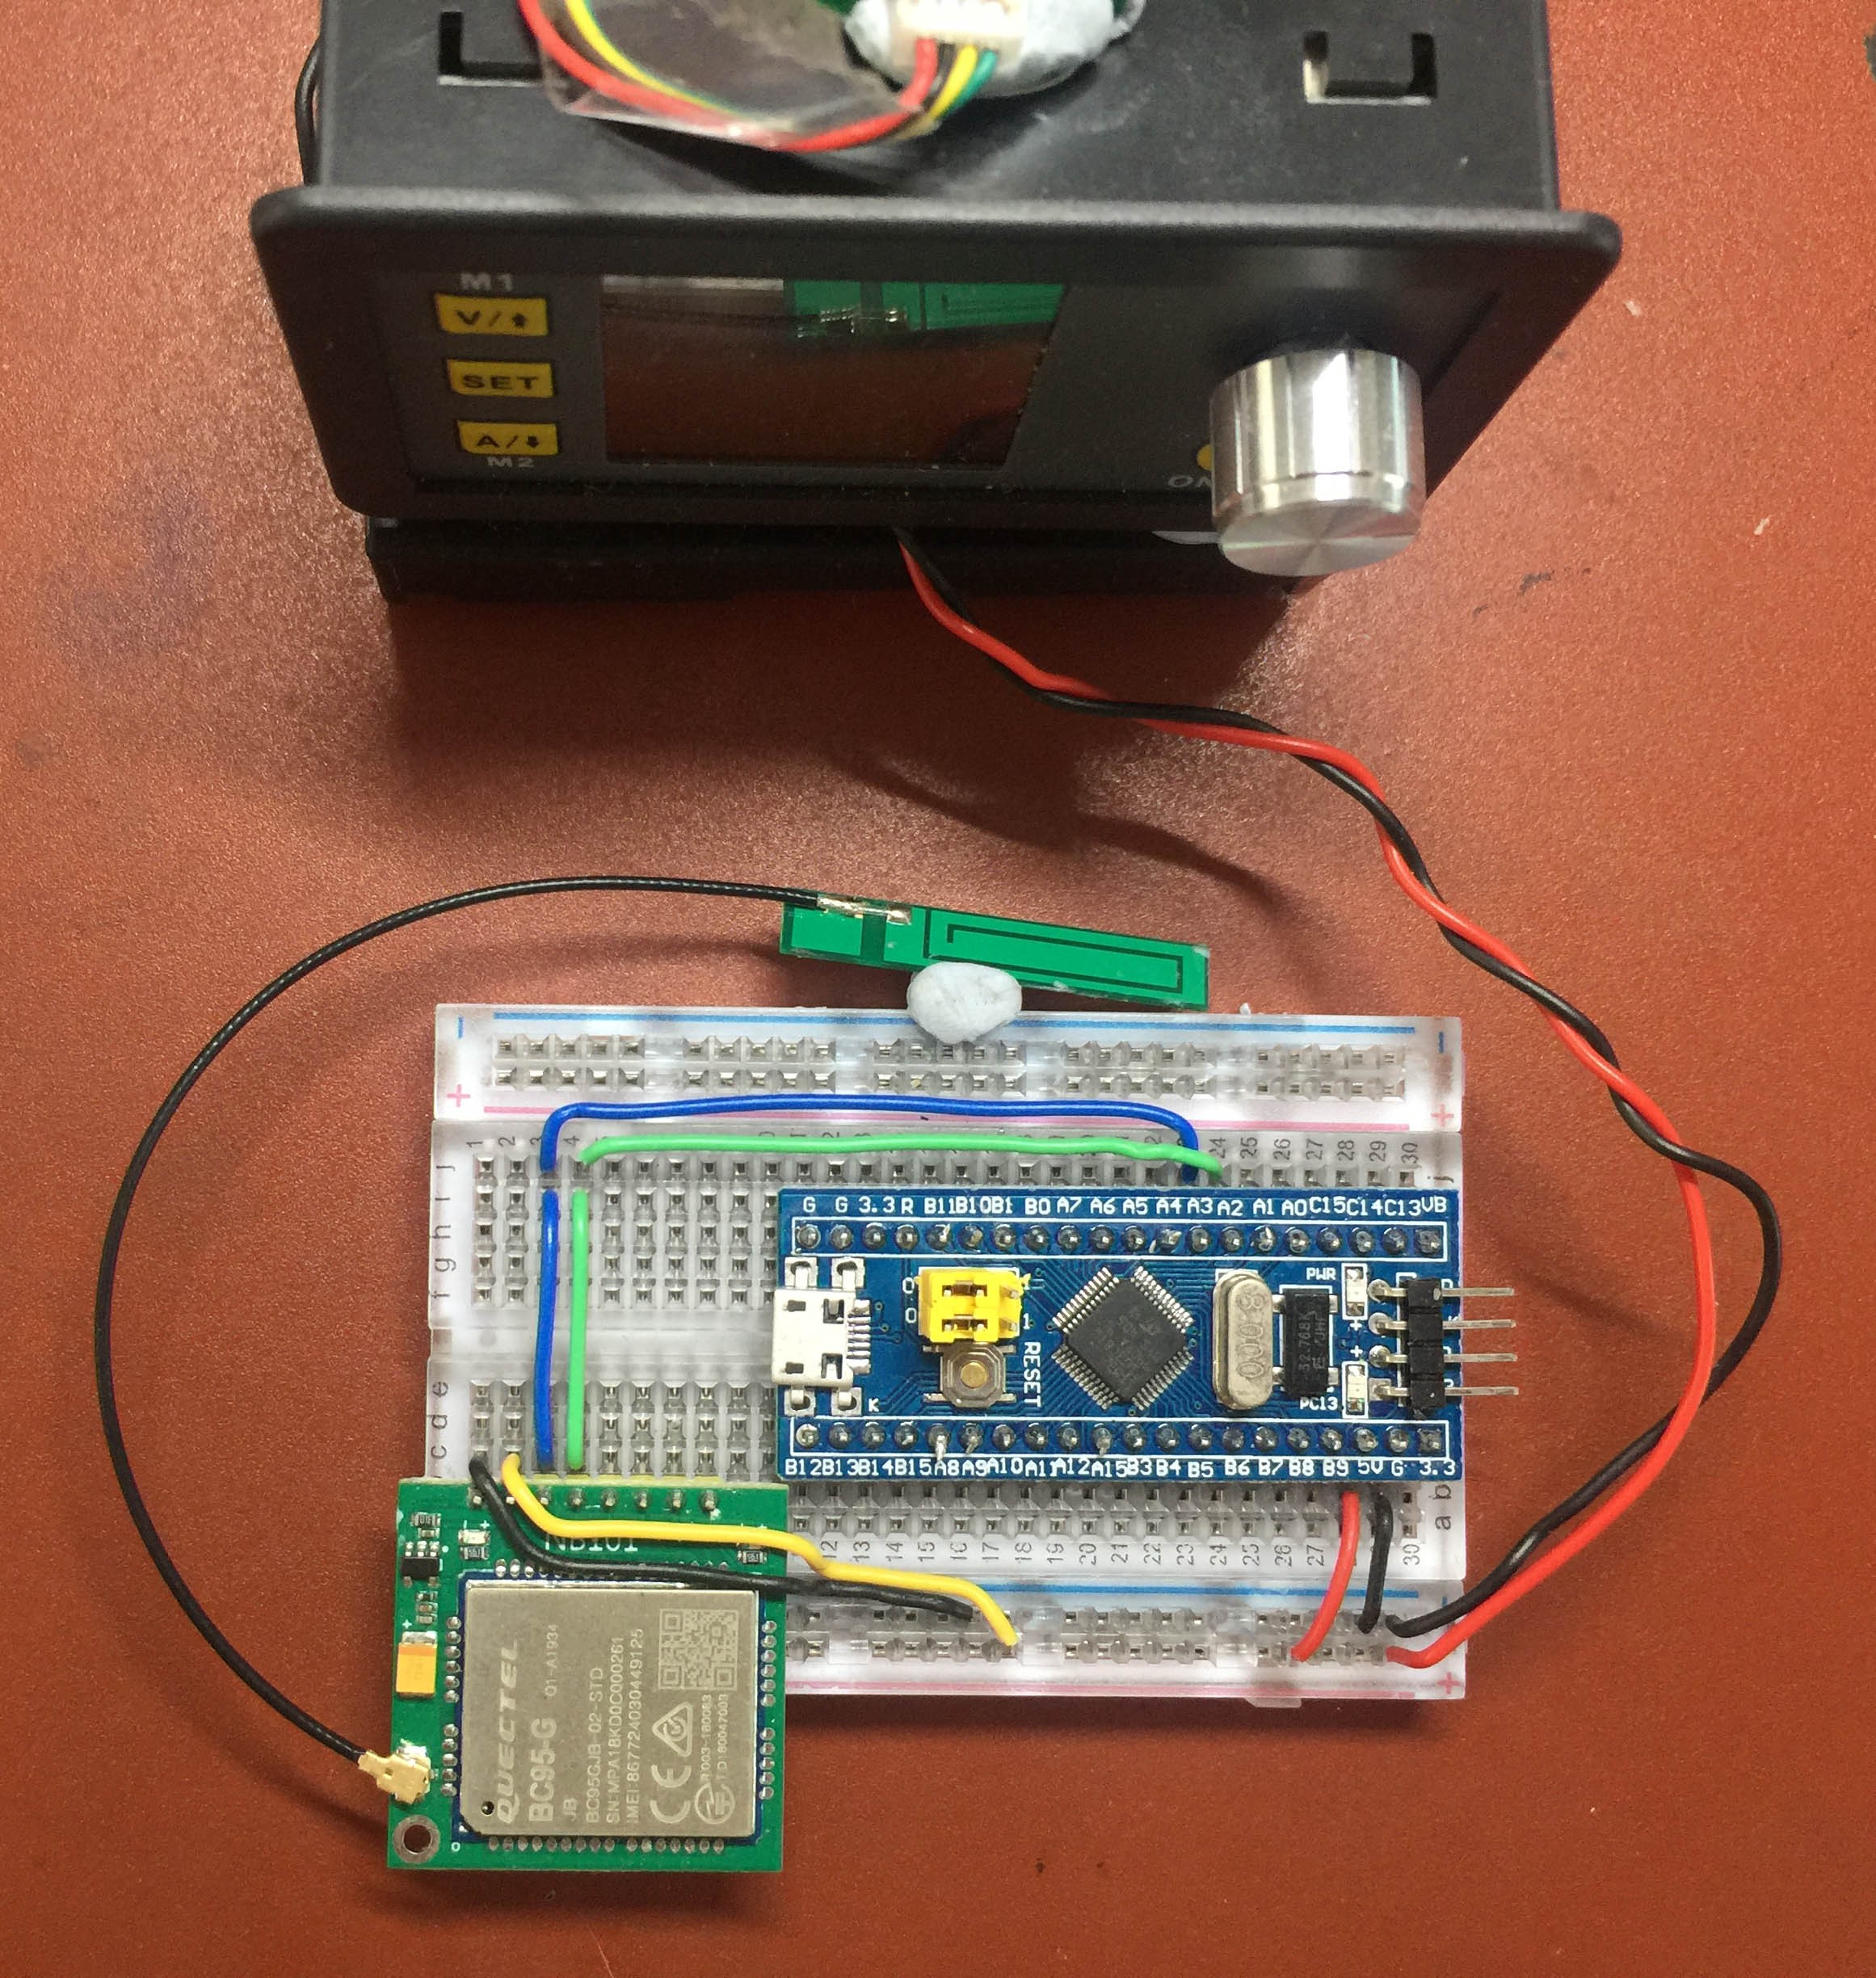 Blue Pill and NB-IoT Module connected to RuiDeng DPS 3005 Power Monitor